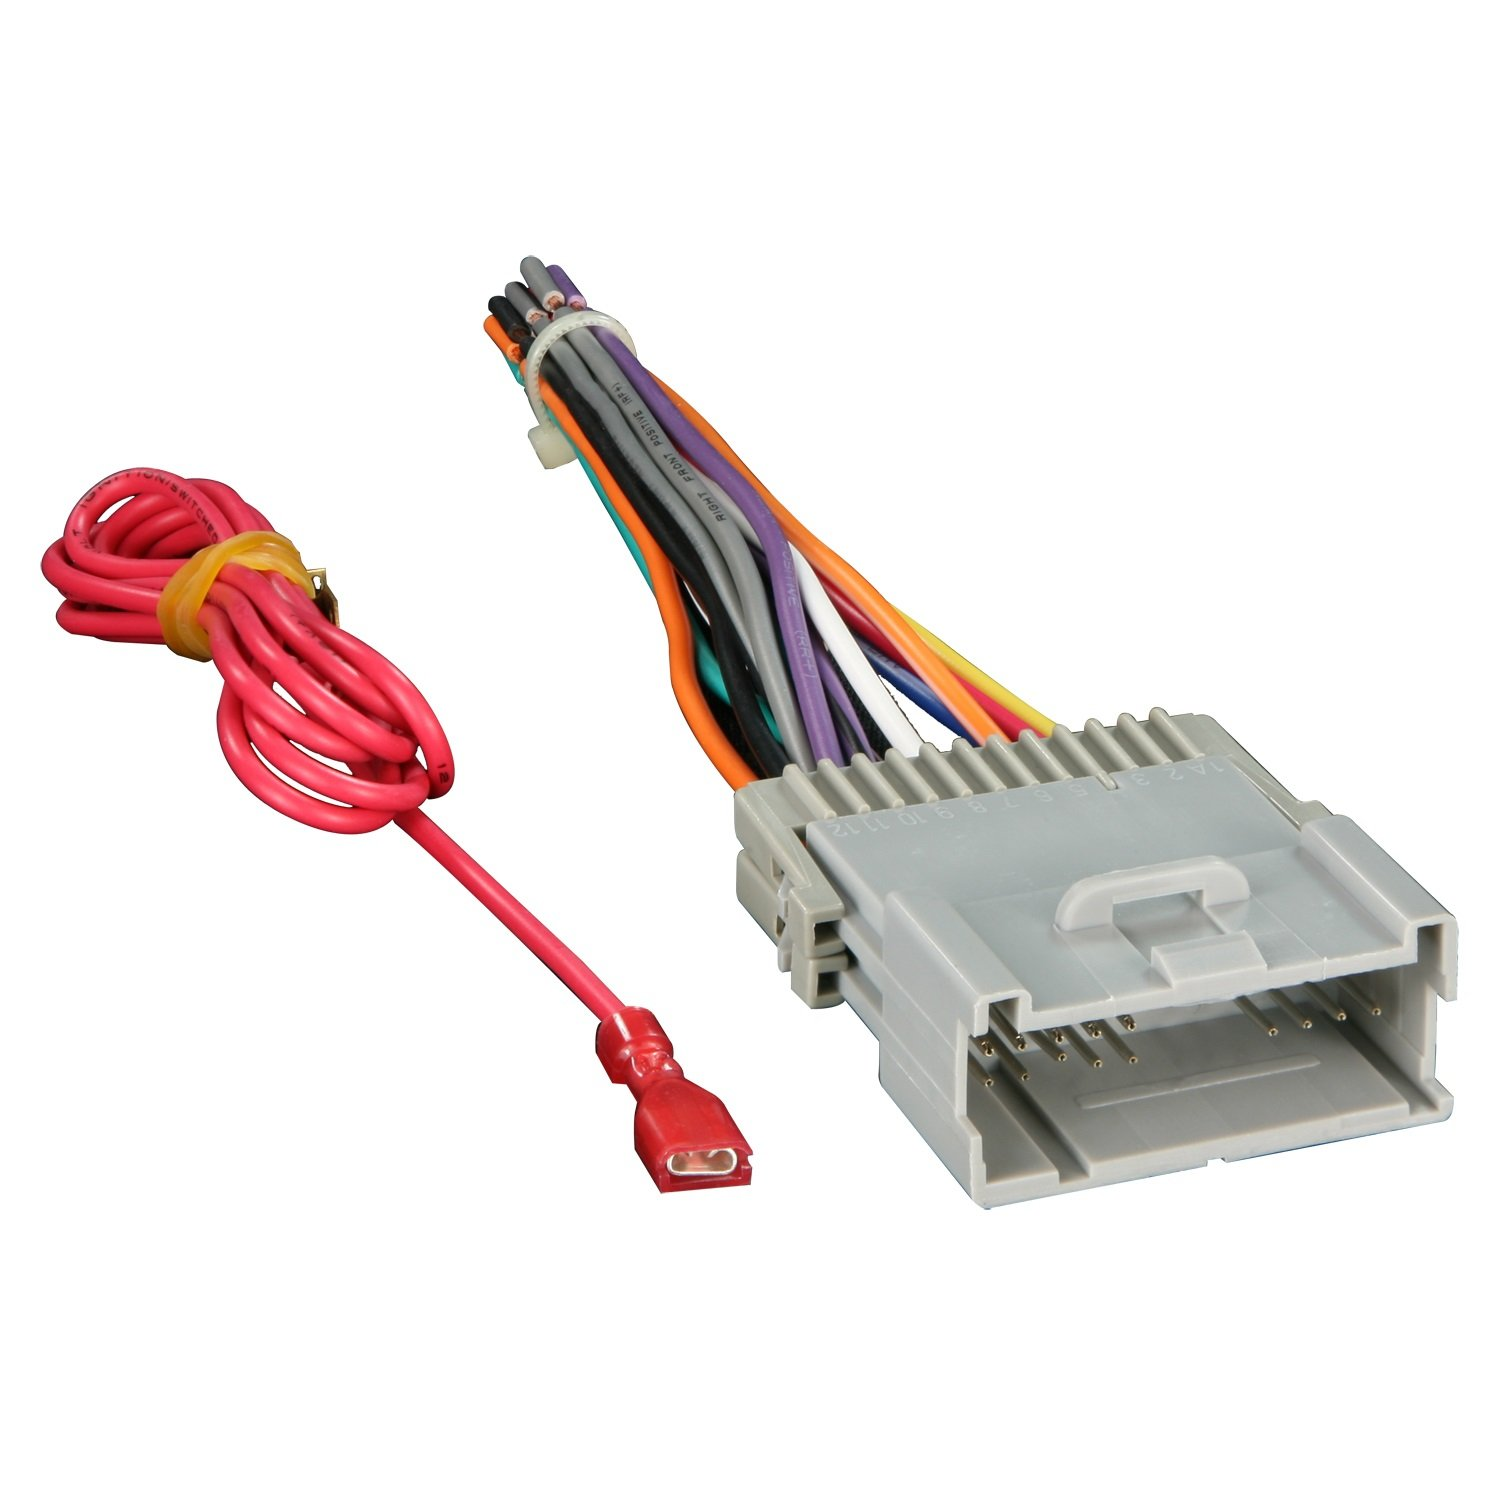 61eewxp9orL._SL1500_ amazon com metra 70 2003 radio wiring harness for gm 98 08 Chevy Fuel Pump Wiring Diagram at gsmx.co